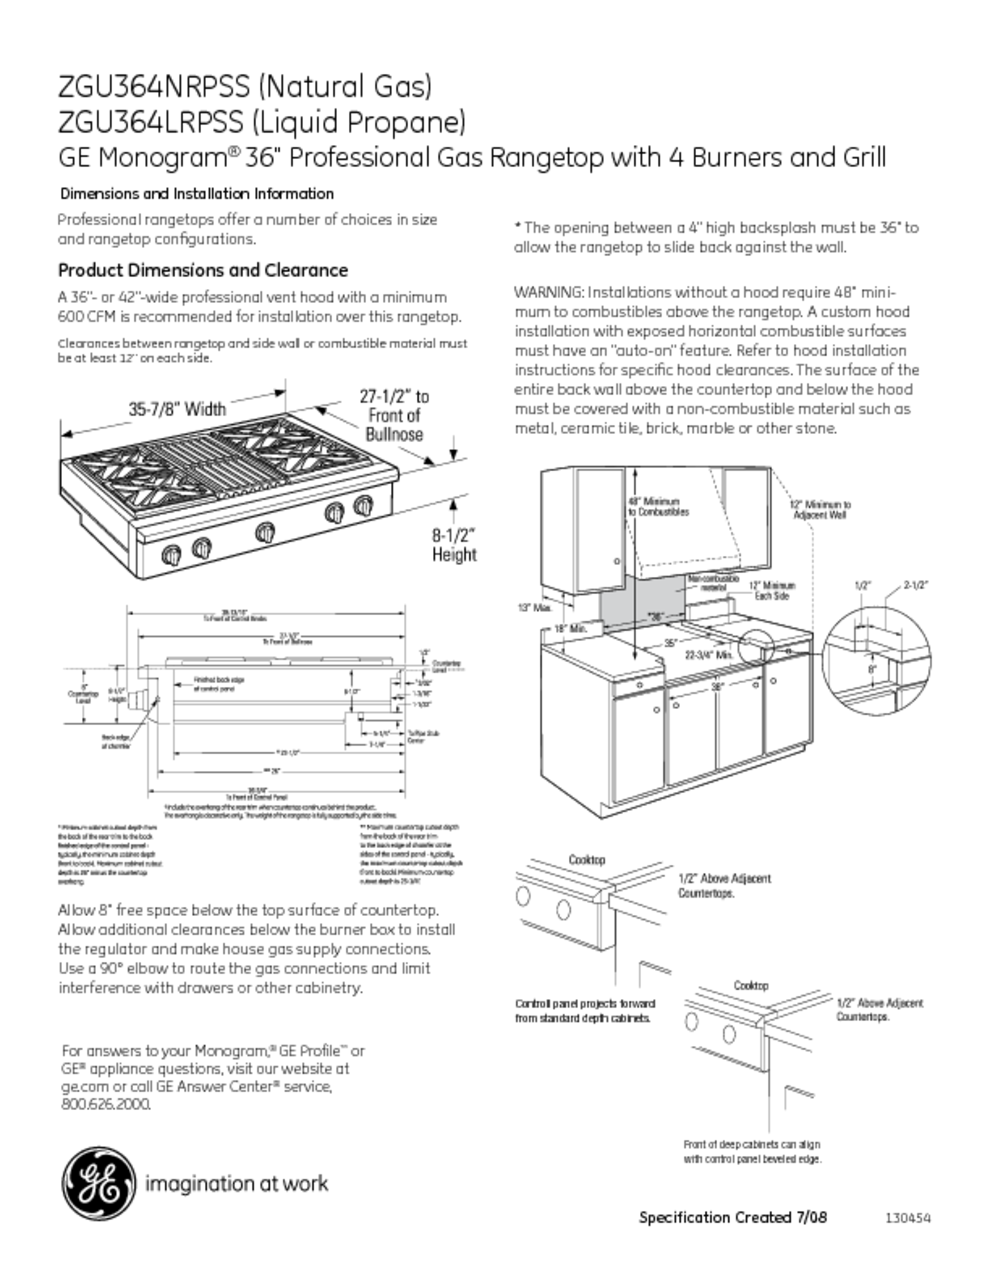 Ge Monogram Range Owners Manual Manual Guide